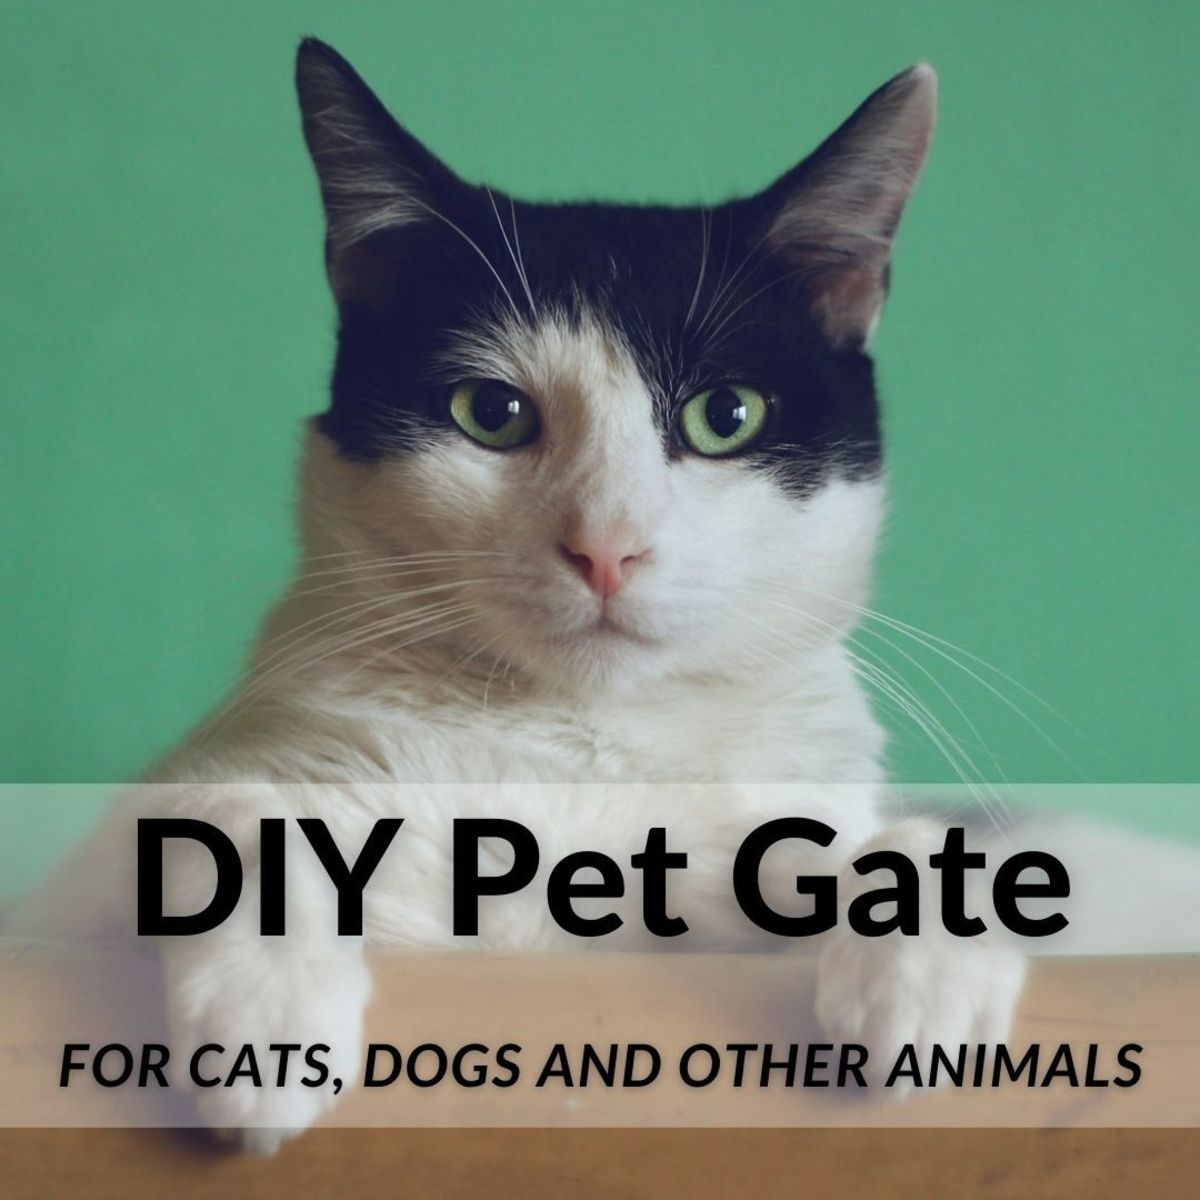 How to Build a Free-Standing Cat, Dog, or Pet Gate Cheaply, Without Tools